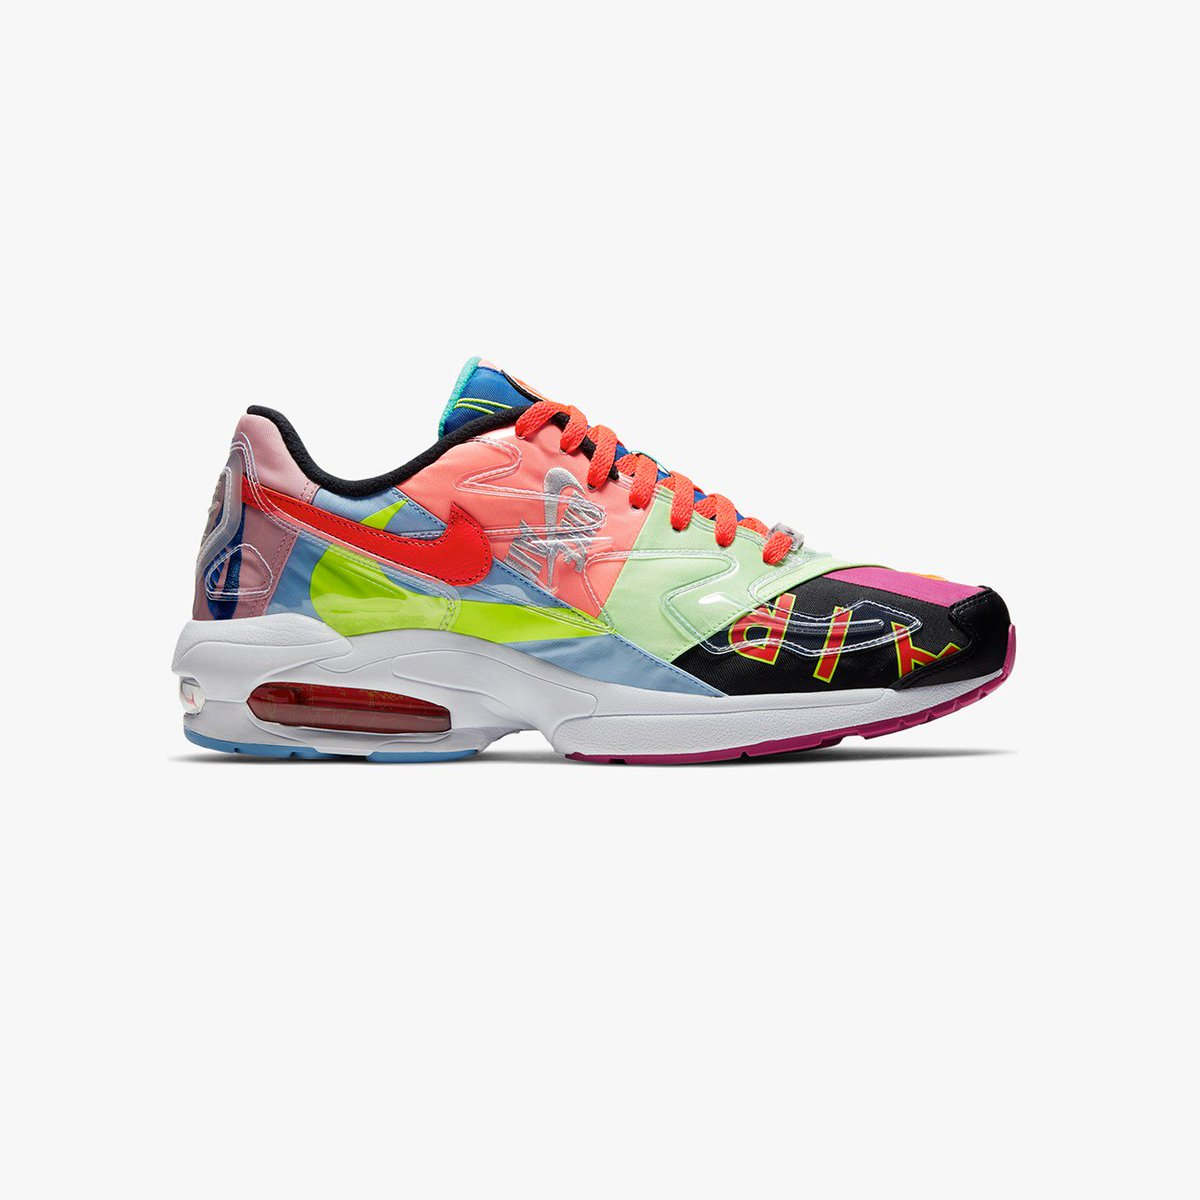 sports shoes d8b18 57634 ... access here httpsbit.ly2TKqeX7  Releasing in-store FCFS on Apr  5th  all SNS locations. Registration ends on Apr 4th at 10AM CEST.